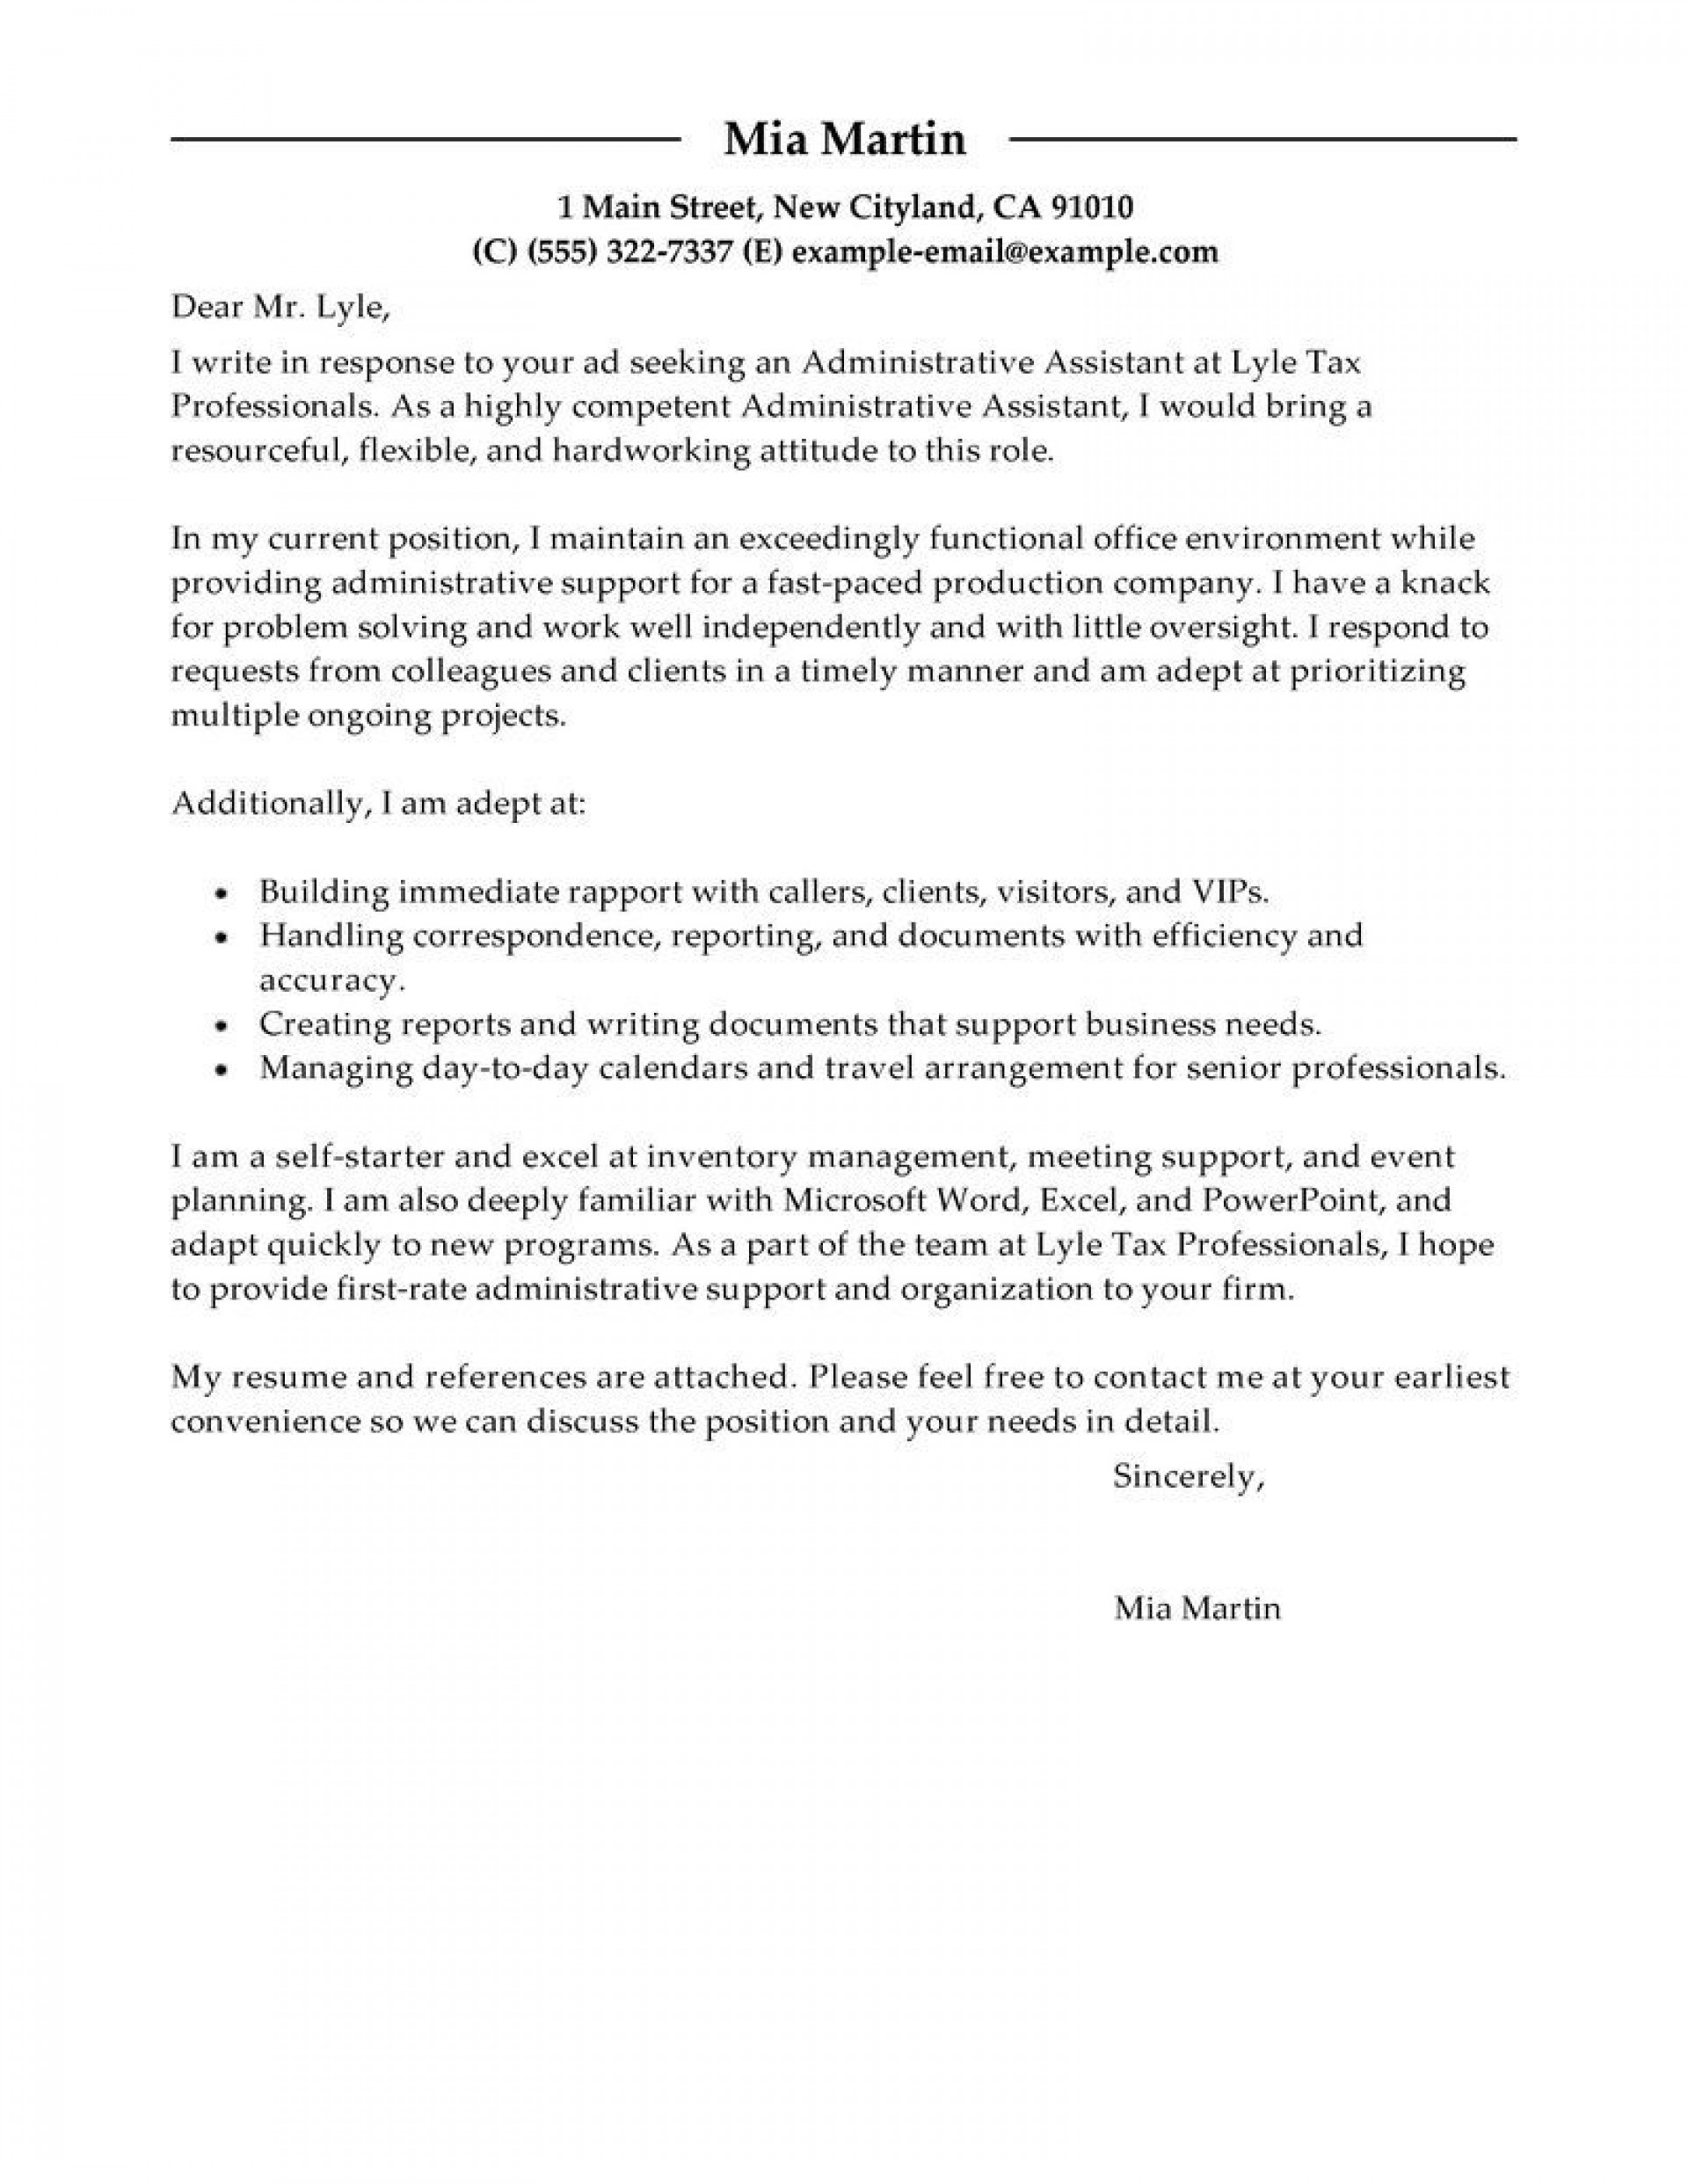 Cover Letter Free Template from www.addictionary.org